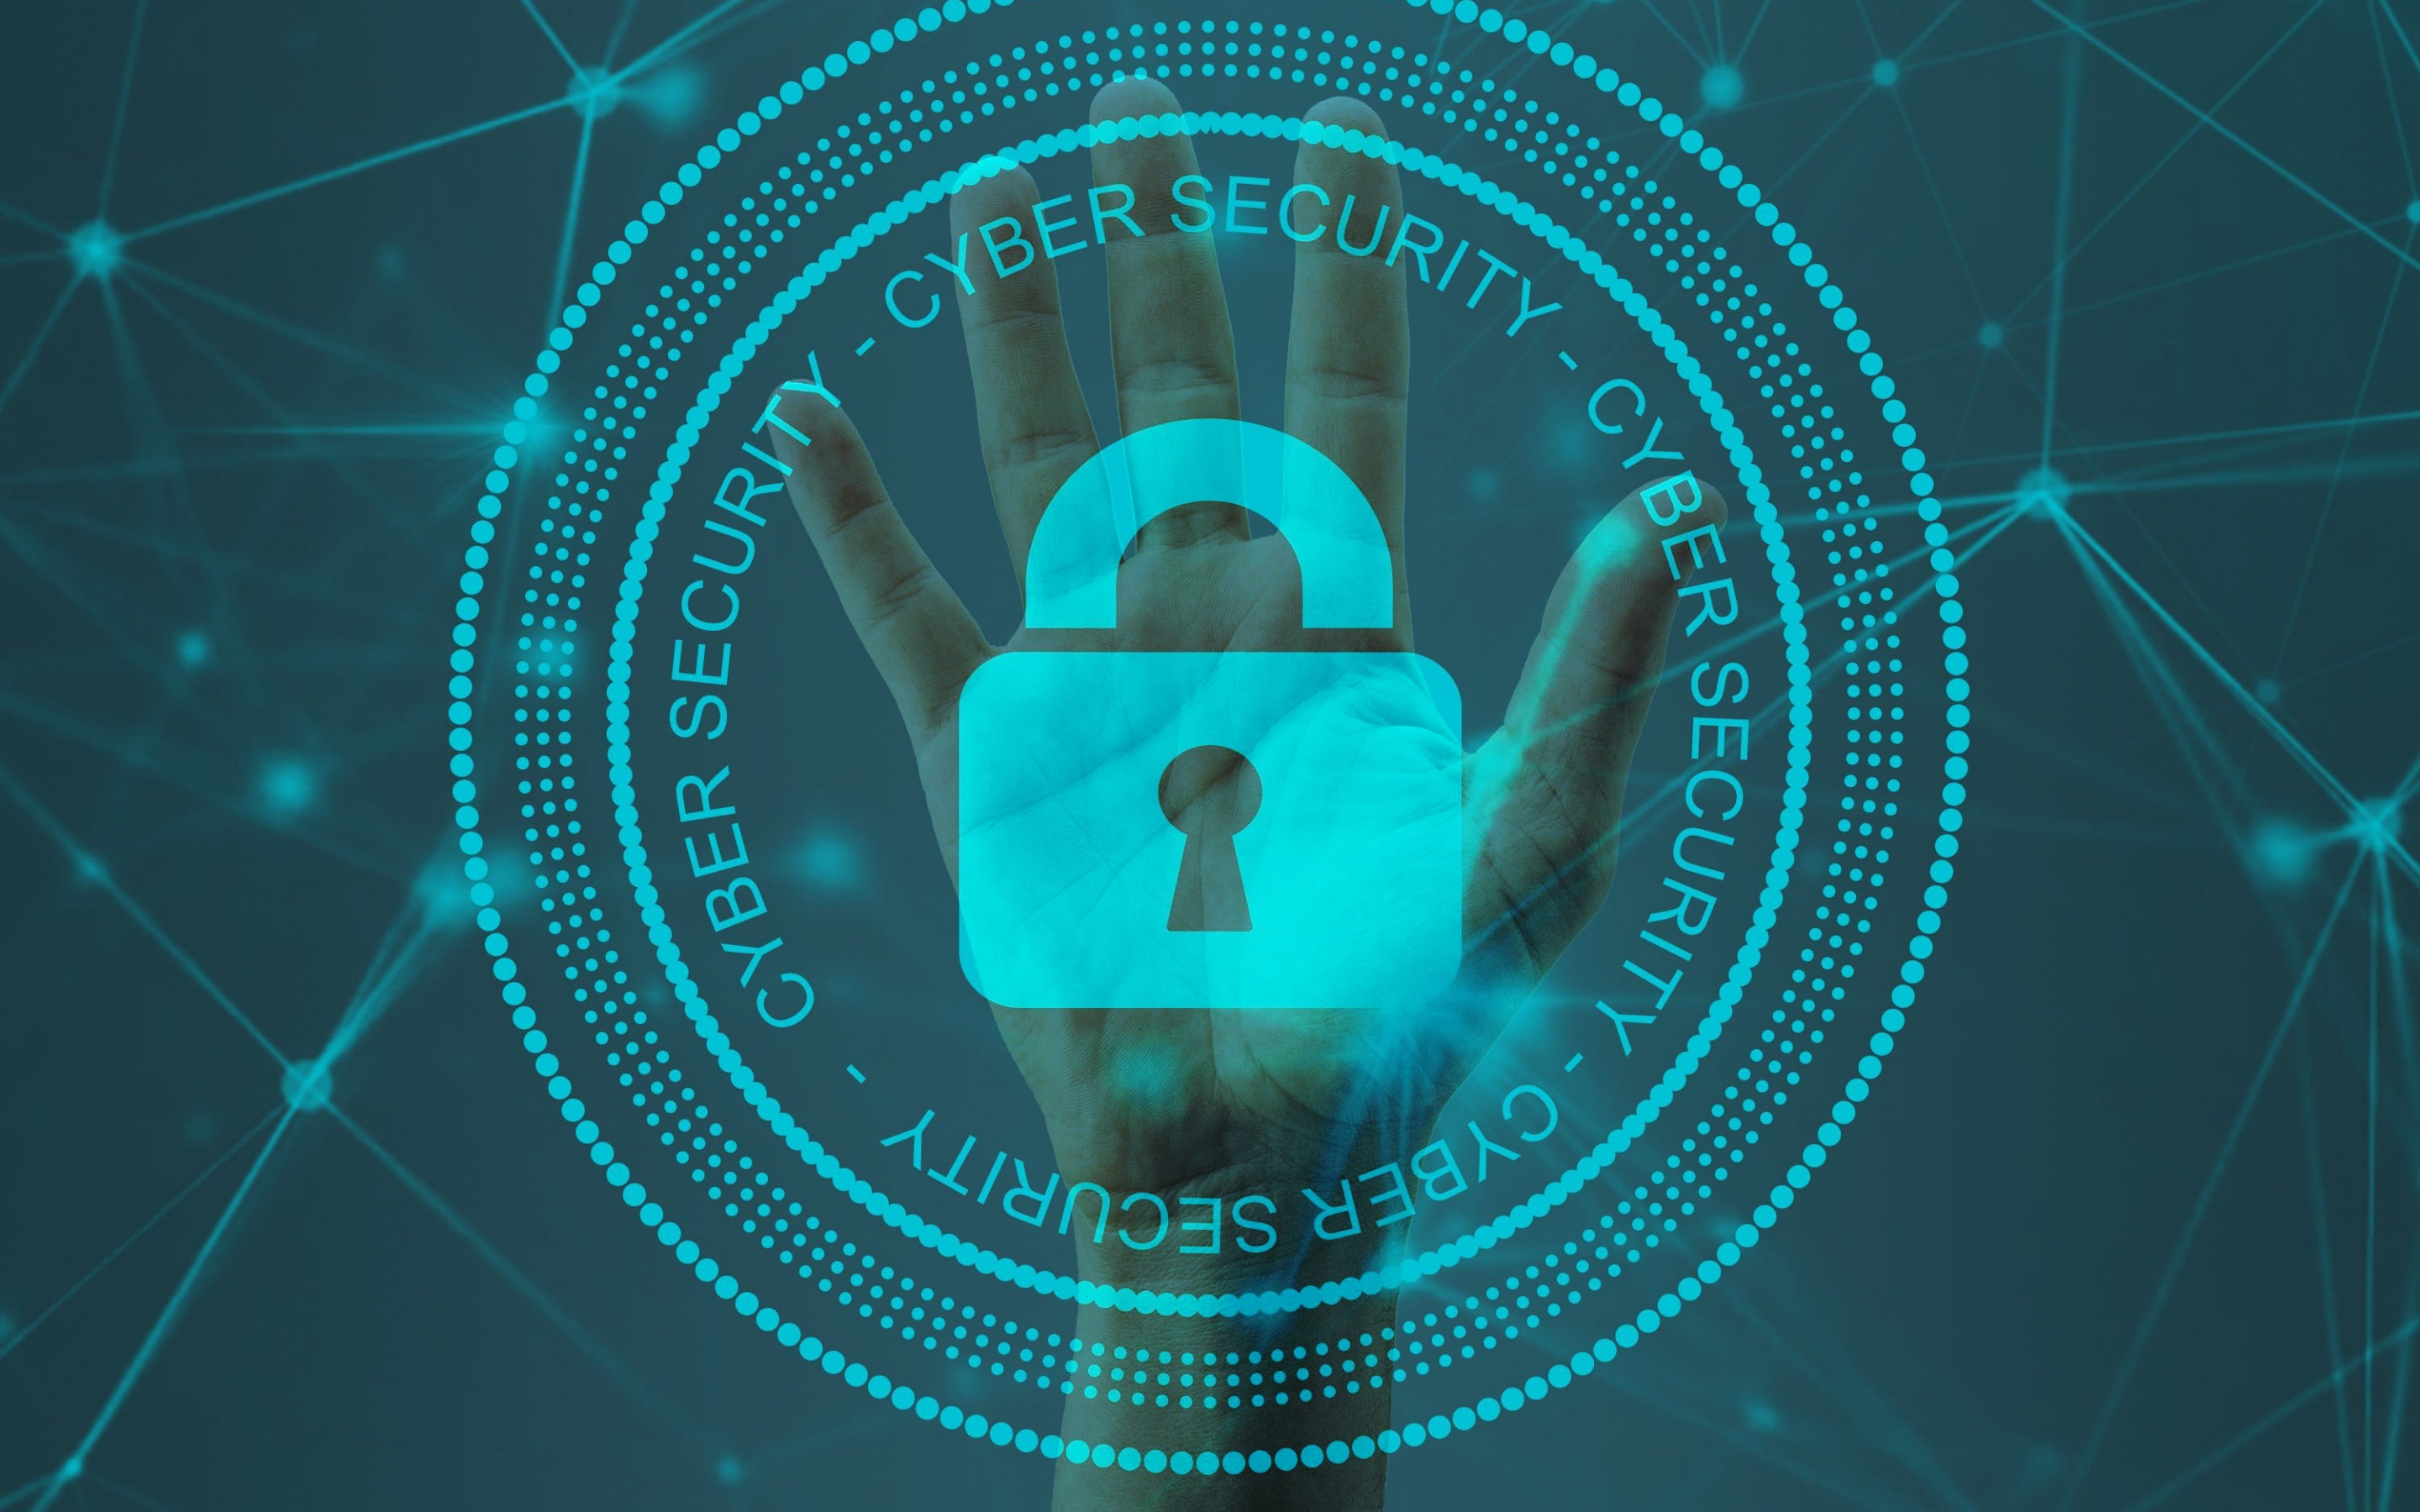 Cyber Security and Network Operations Certificate (CG)(Online)